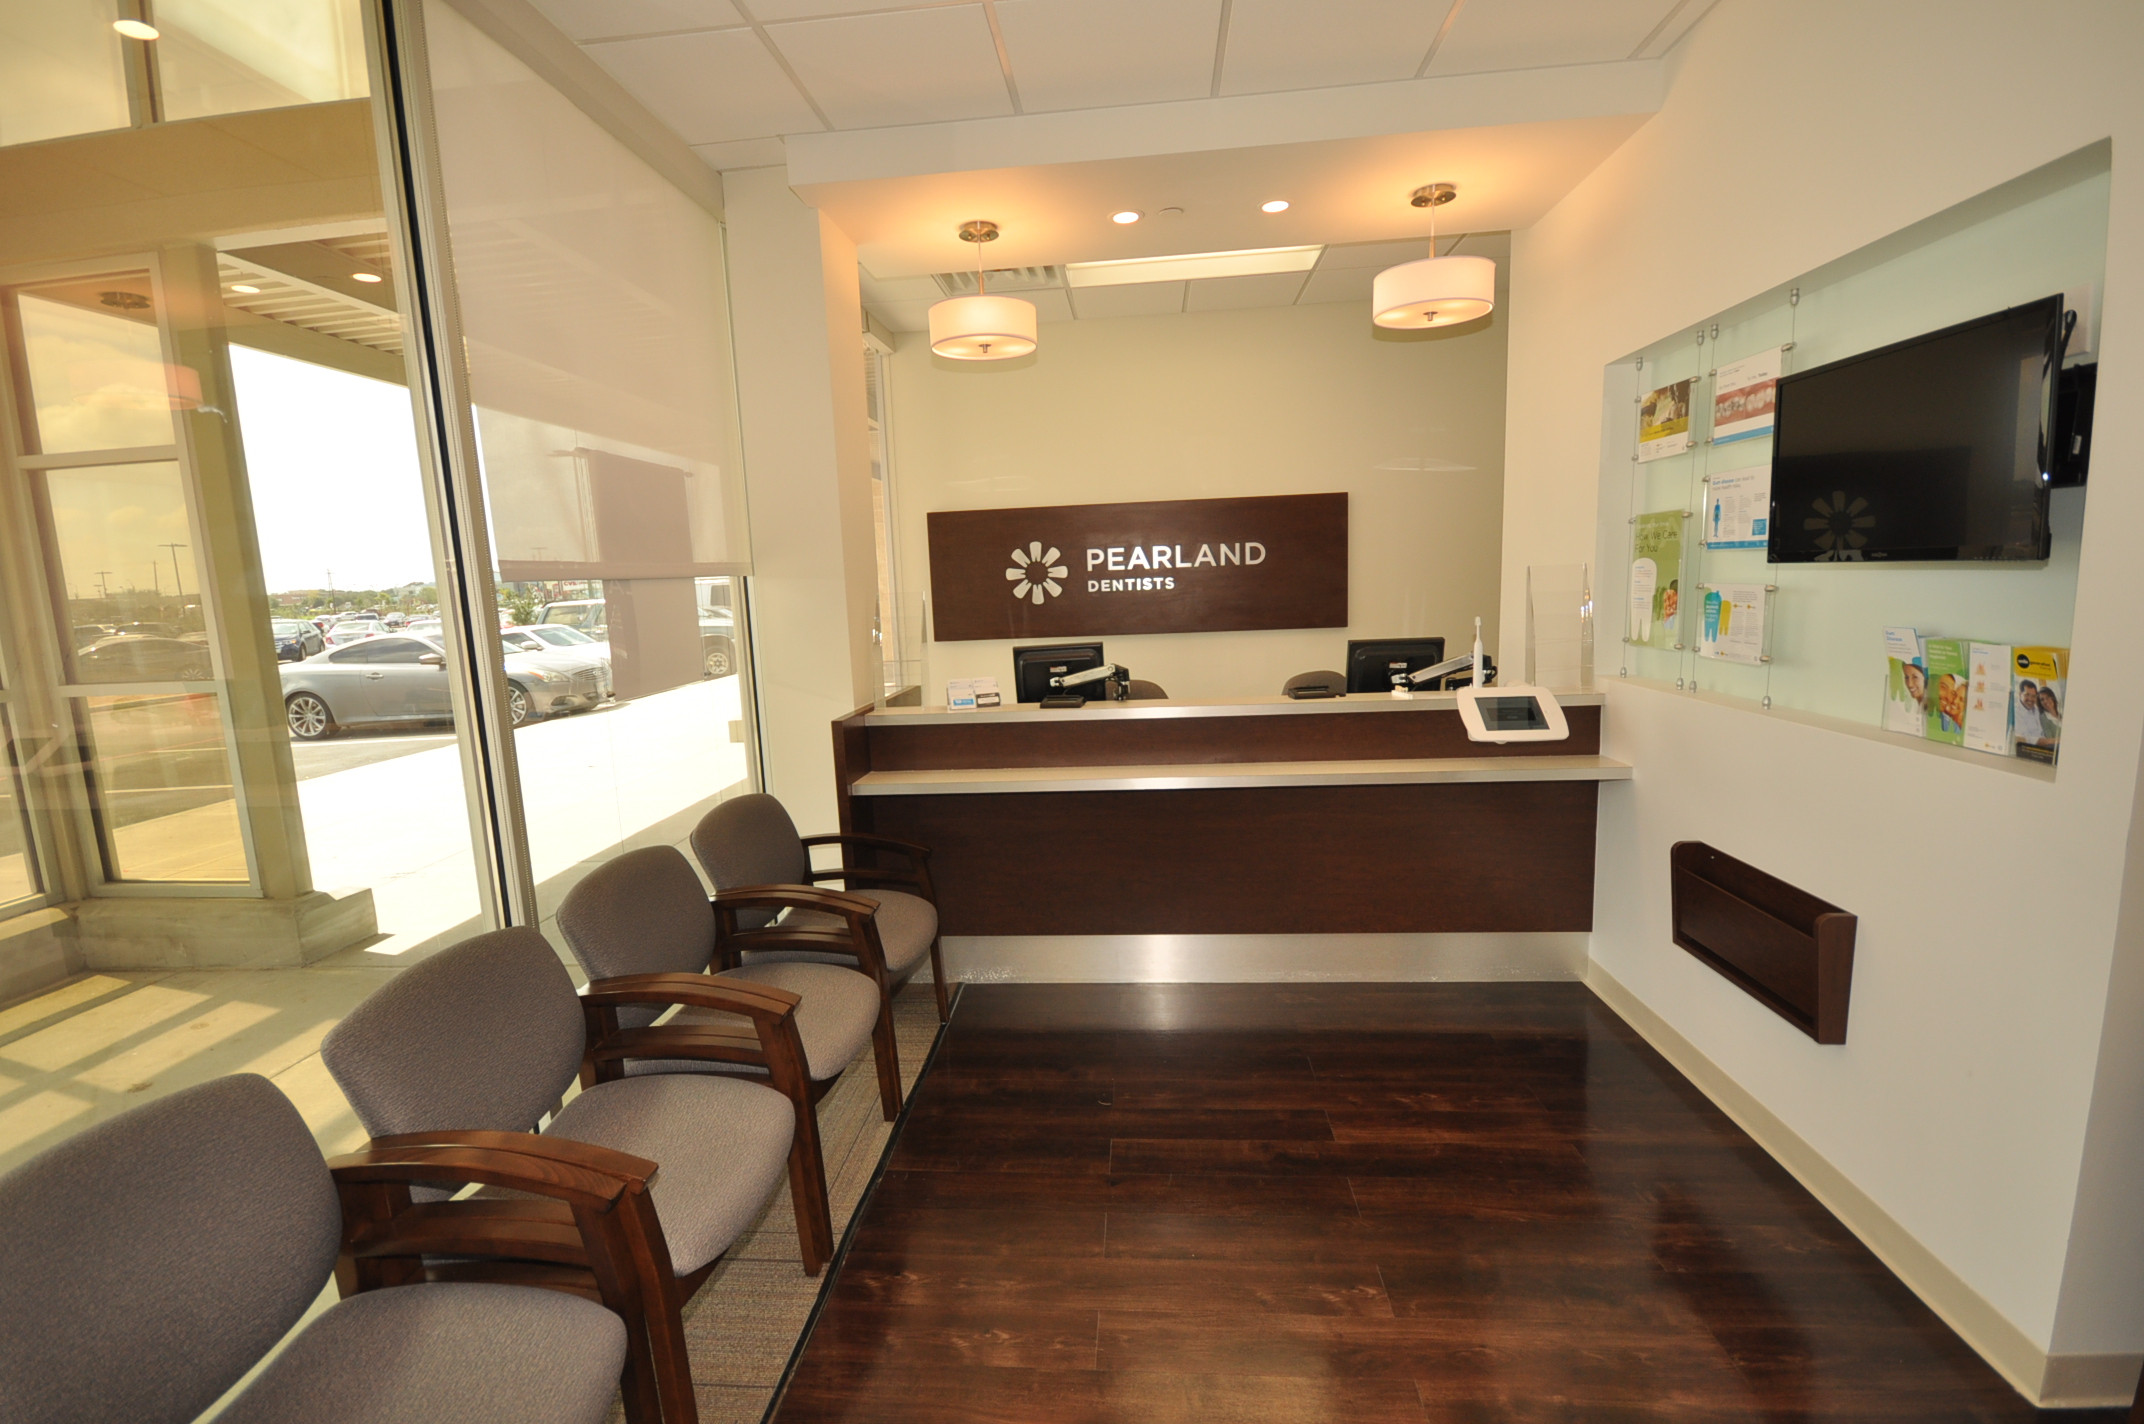 Pearland Dentists image 2